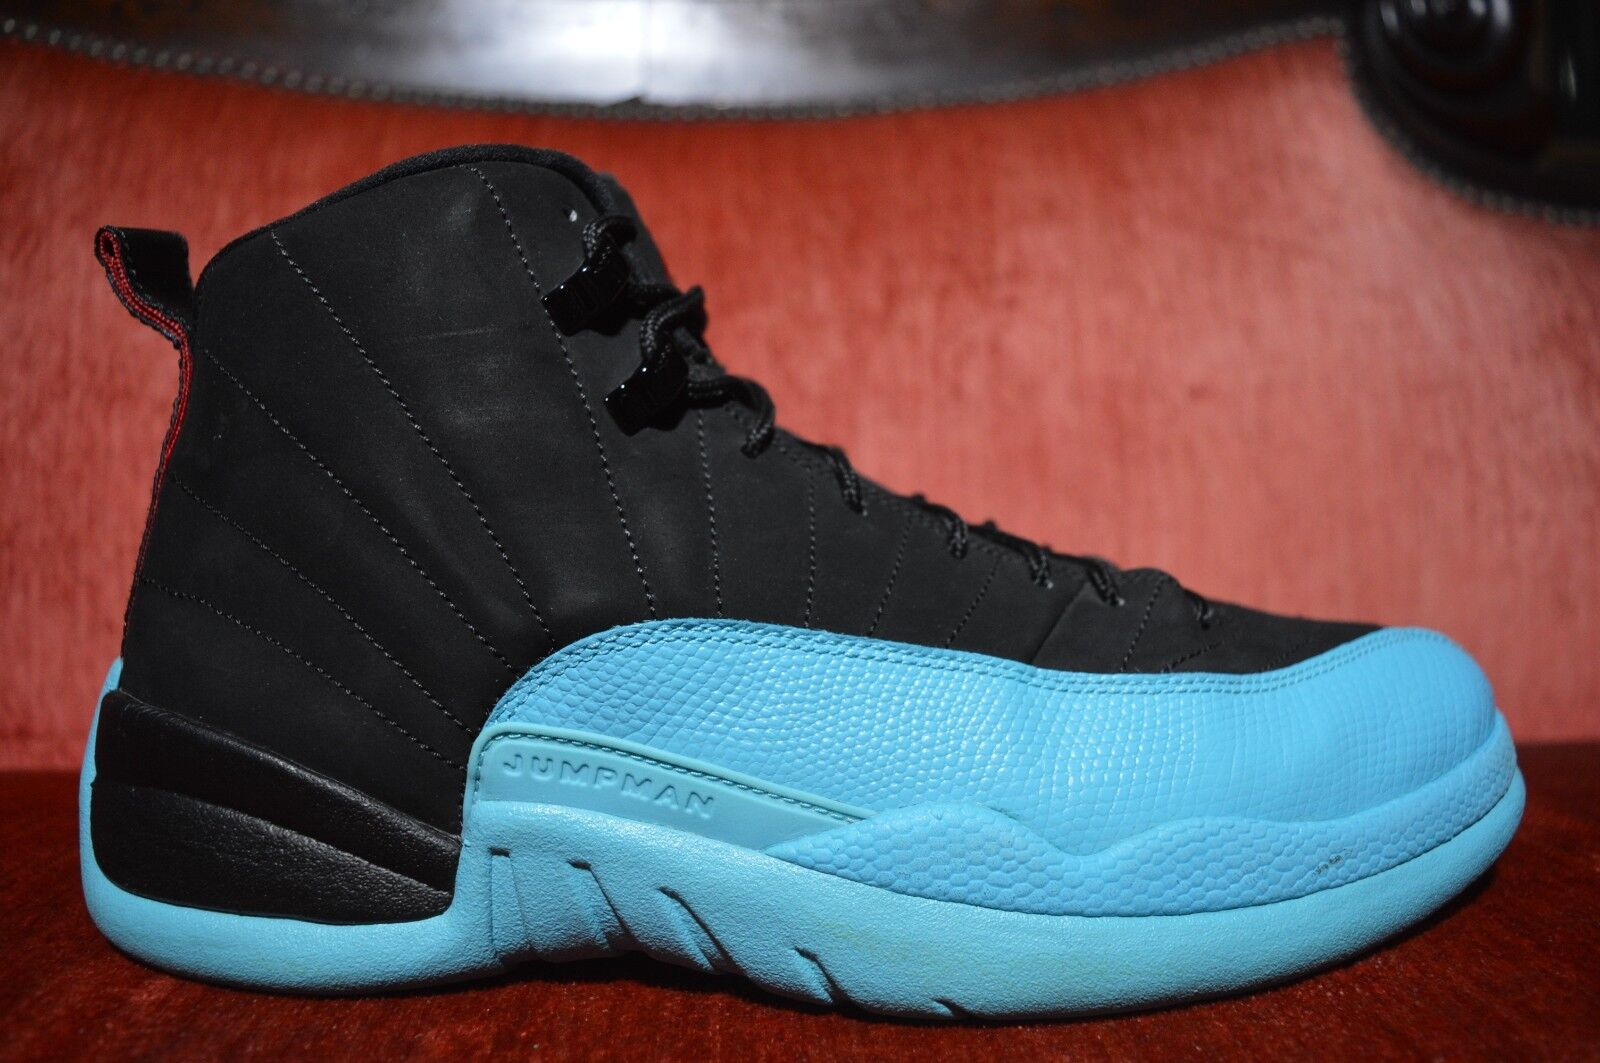 CLEAN Nike Air Jordan XII 12 Retro Black Gamma Blue 130690-027 Comfortable The most popular shoes for men and women